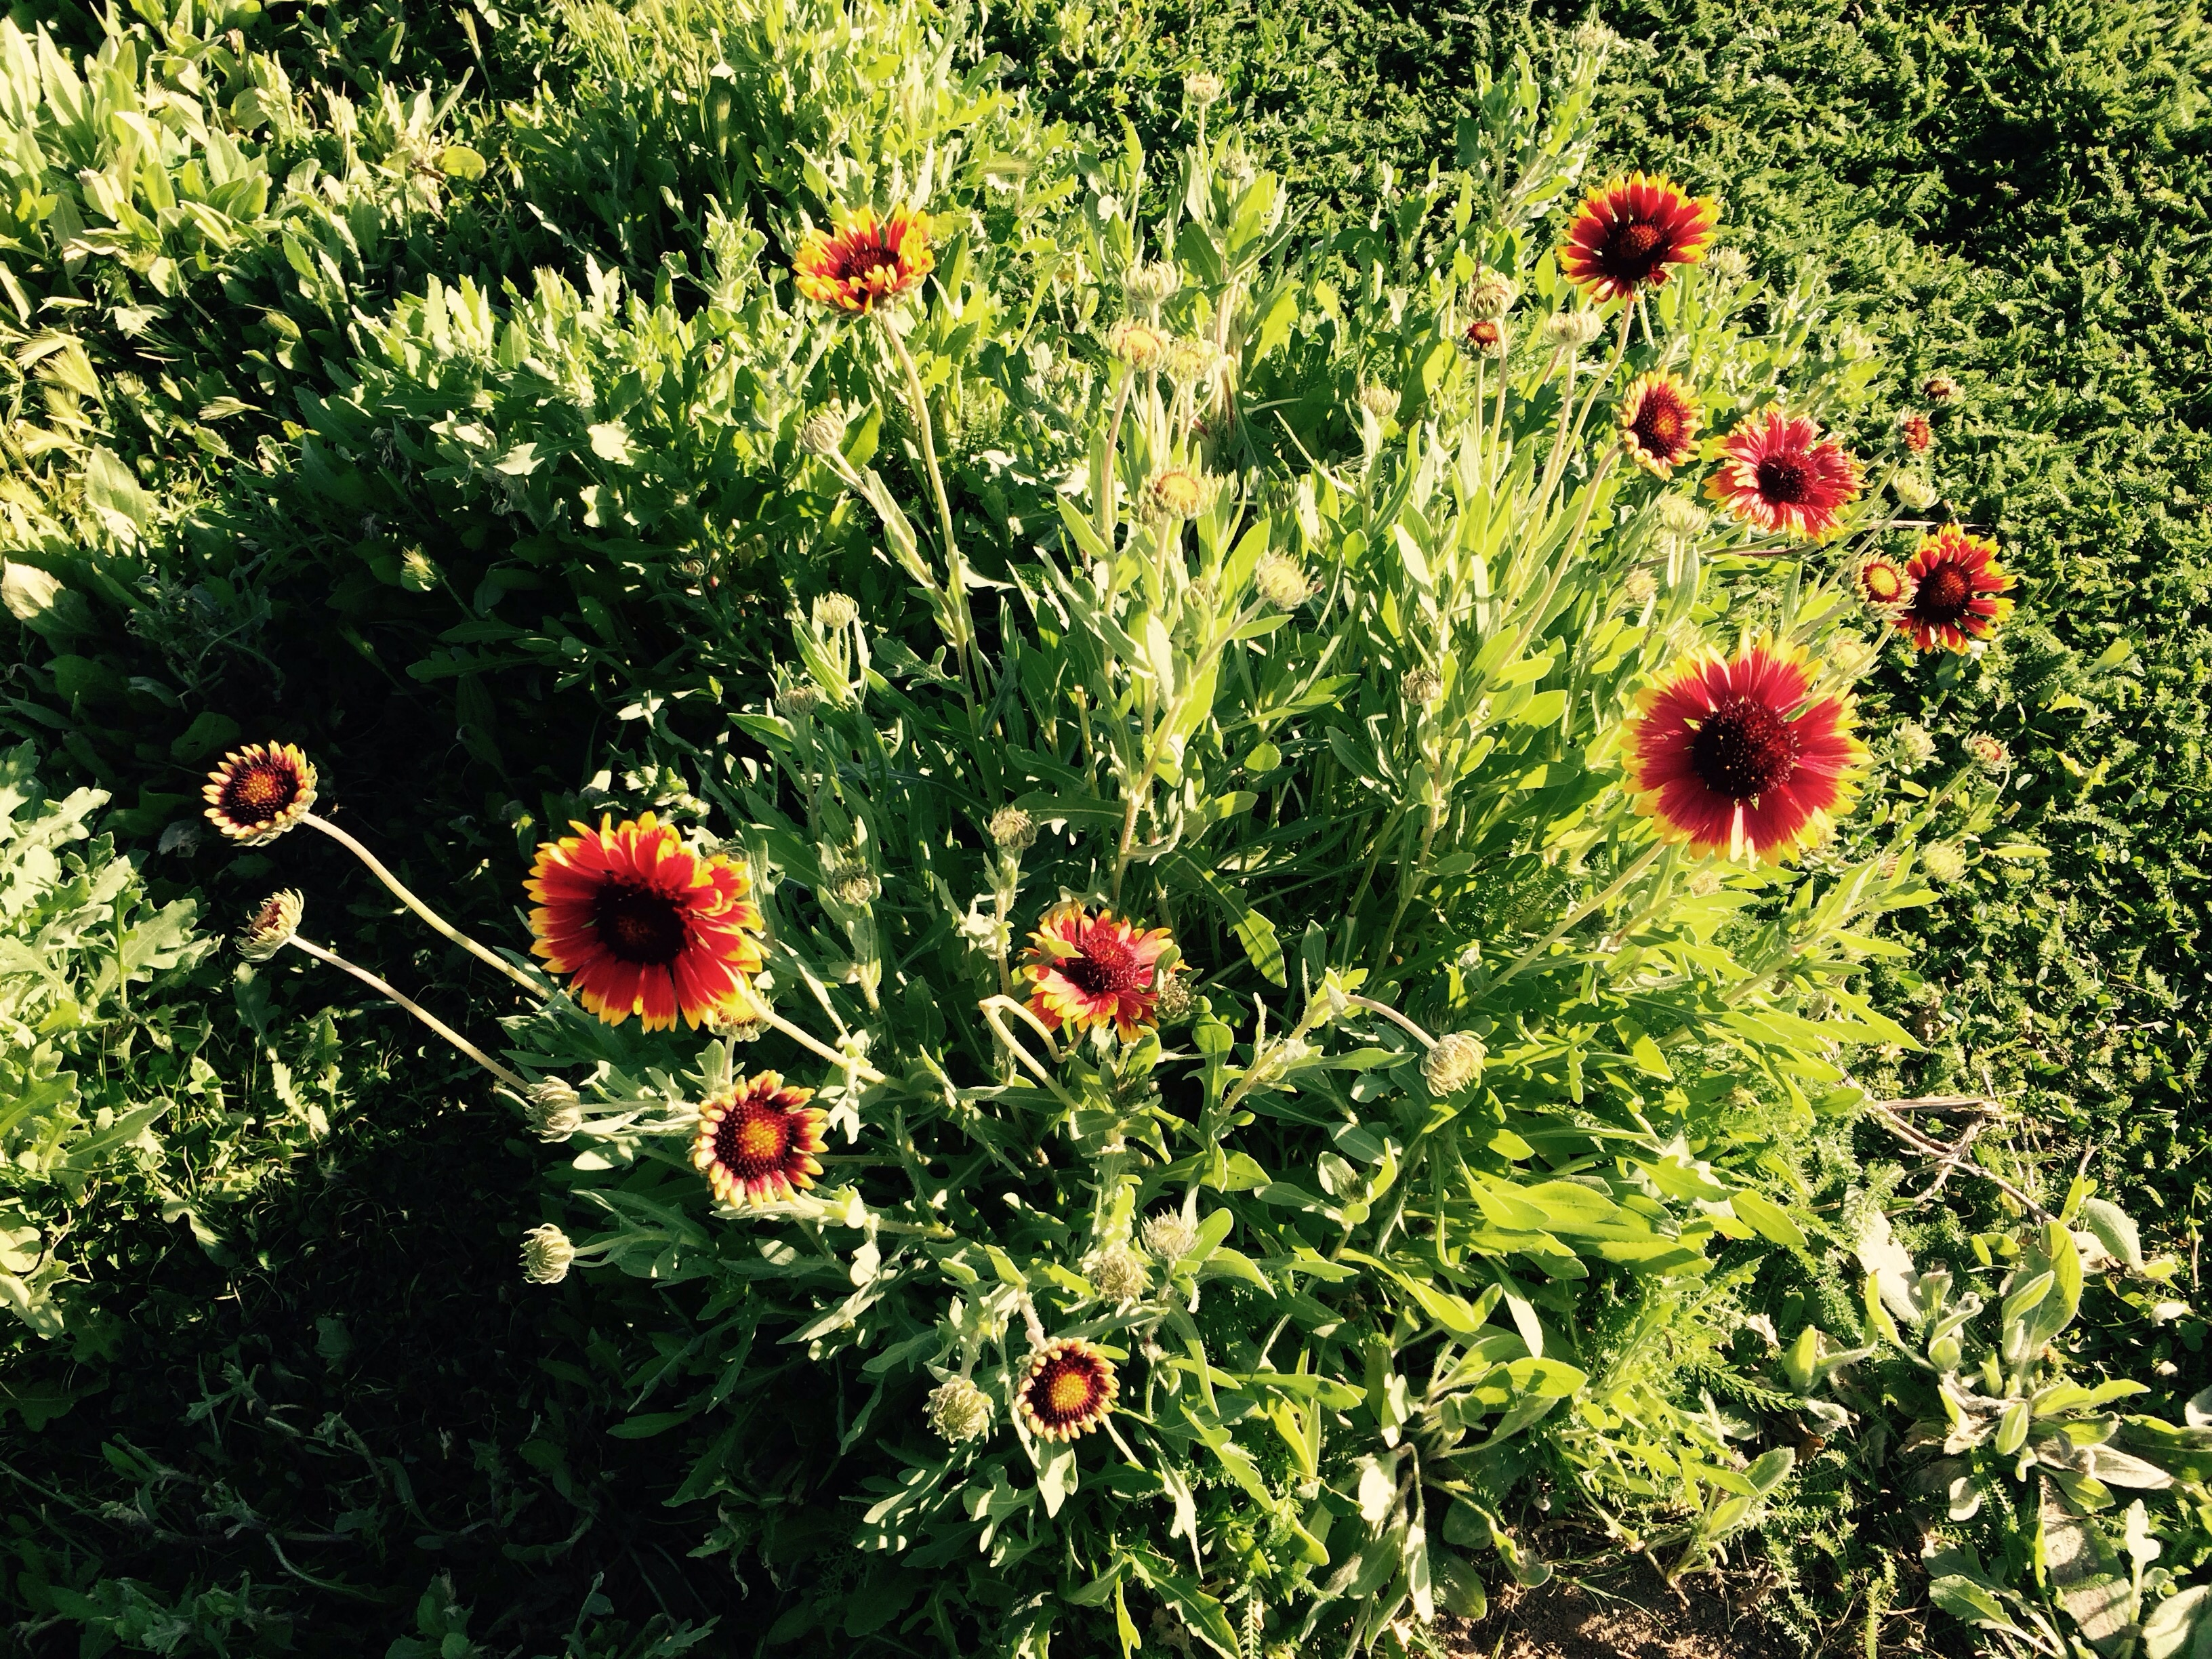 We have a field of flowers on our farm so nice to see and we have herb flowers that are really tasty